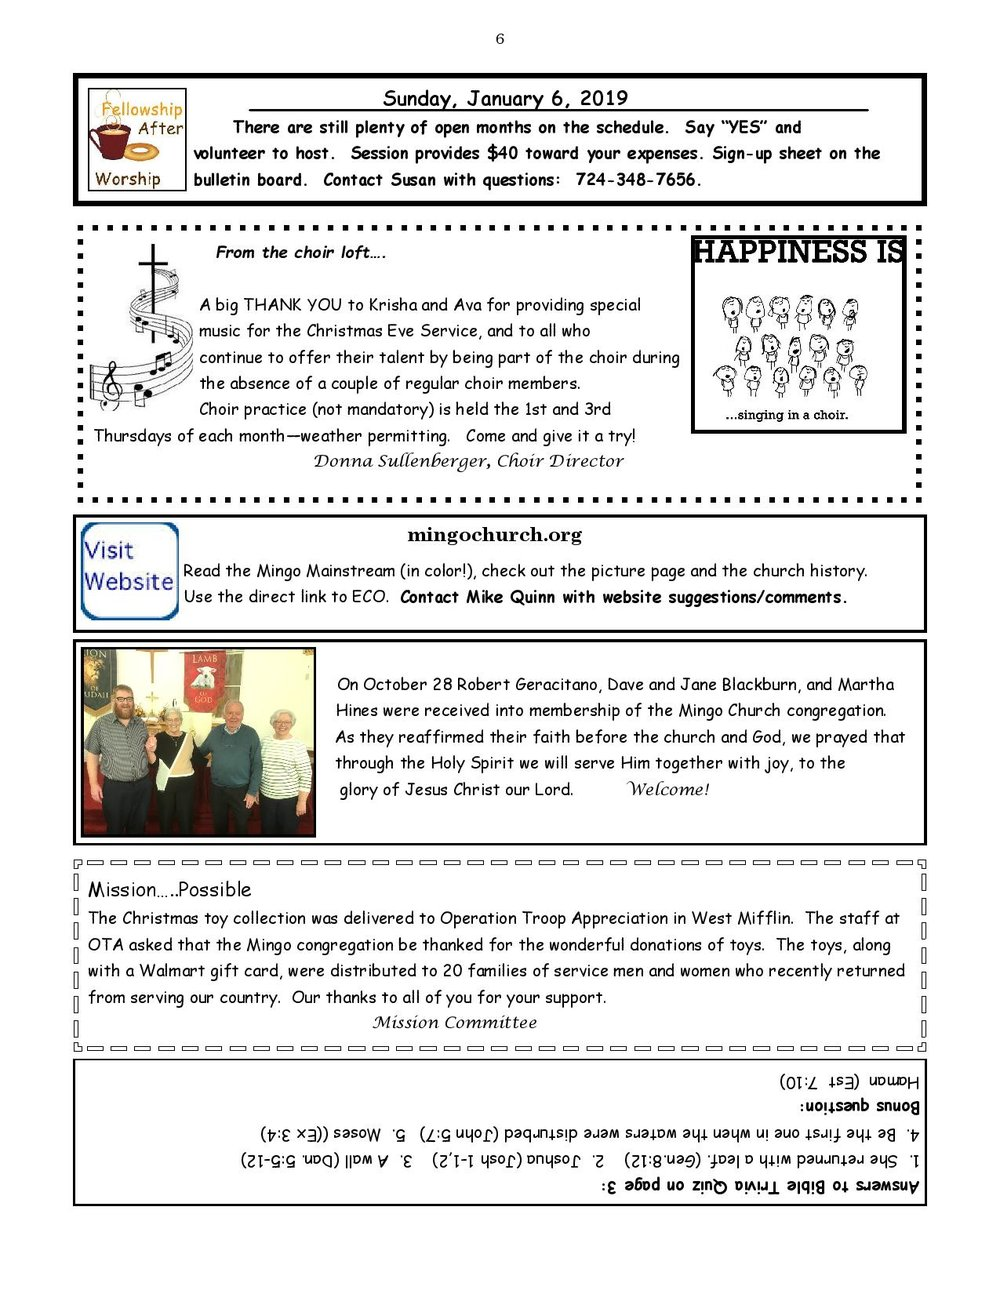 JANUARY NEWSLETTER (1)-page-006.jpg